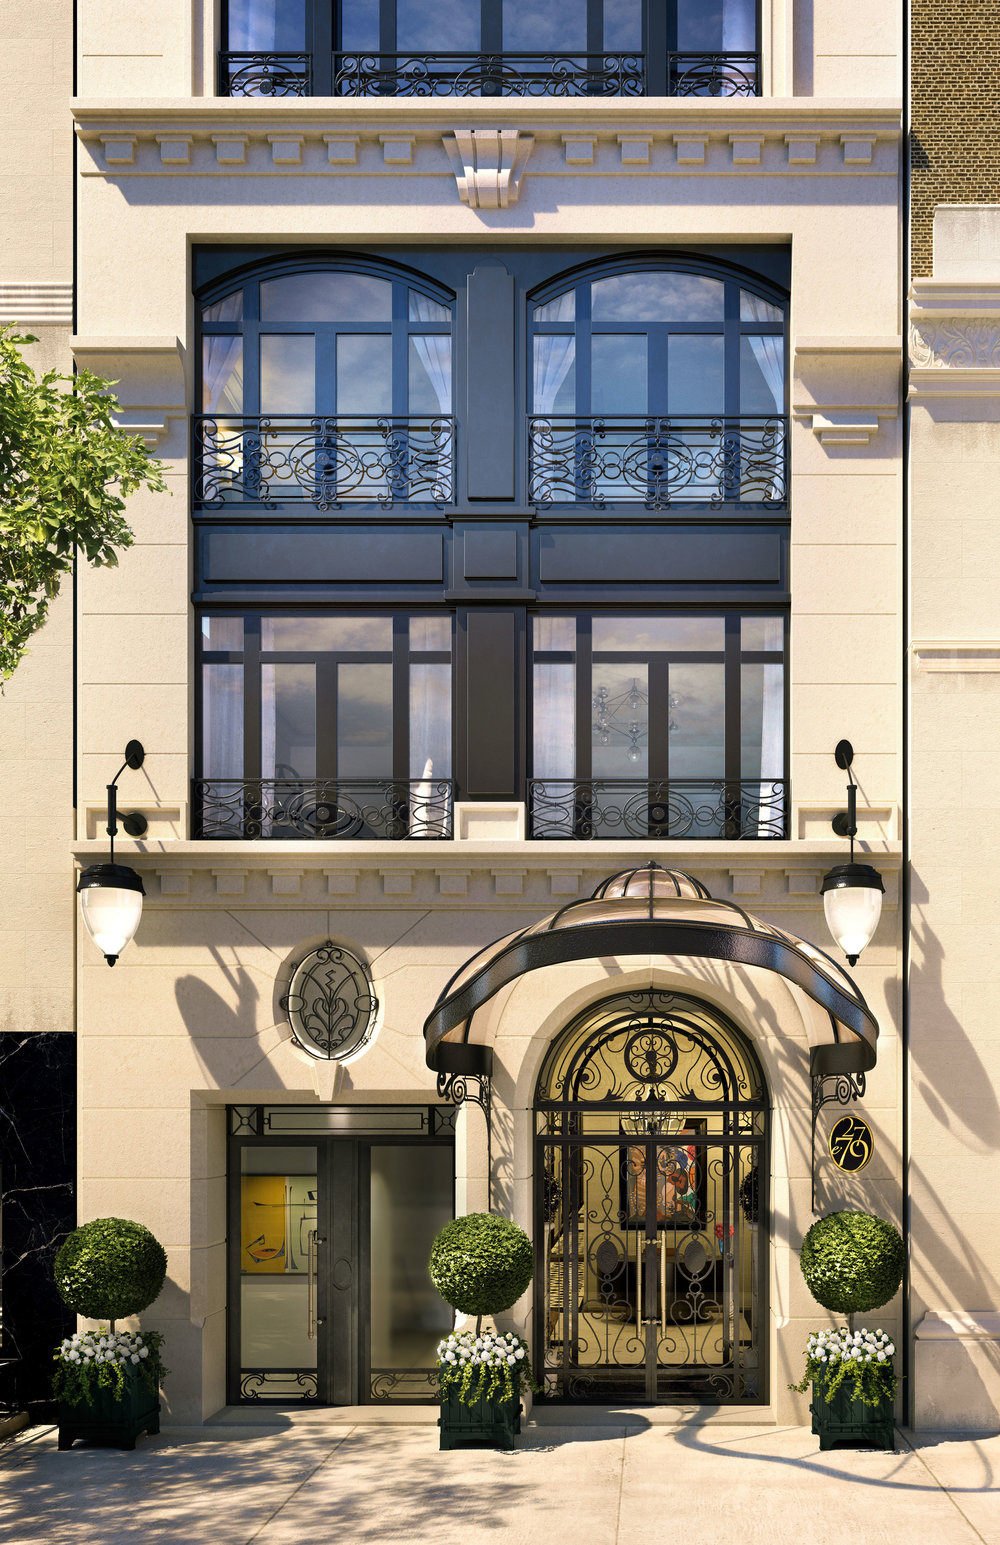 Sales Have Officially Launched at 27 East 79th Street, The First New Ground-Up Project On The Landmarked UES Block